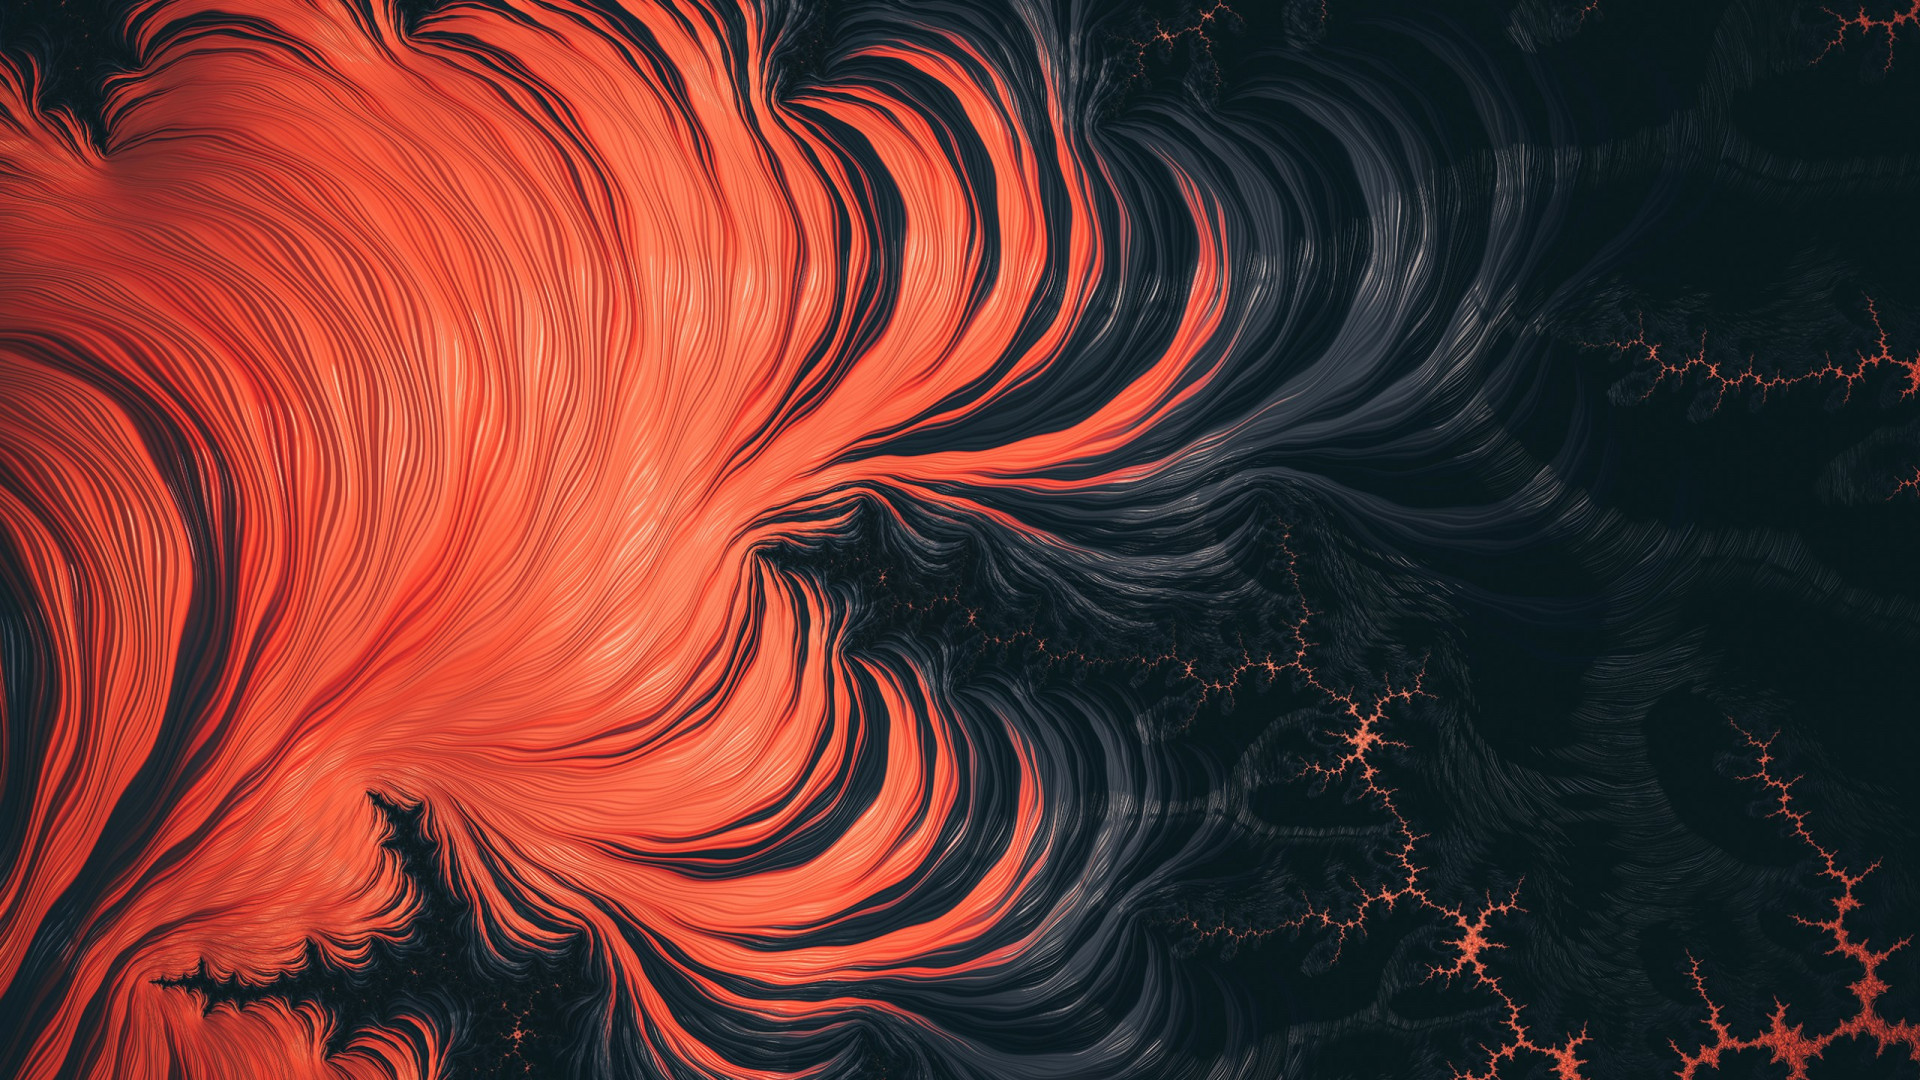 Fractal Art: Hyperventilation wallpaper 1920x1080